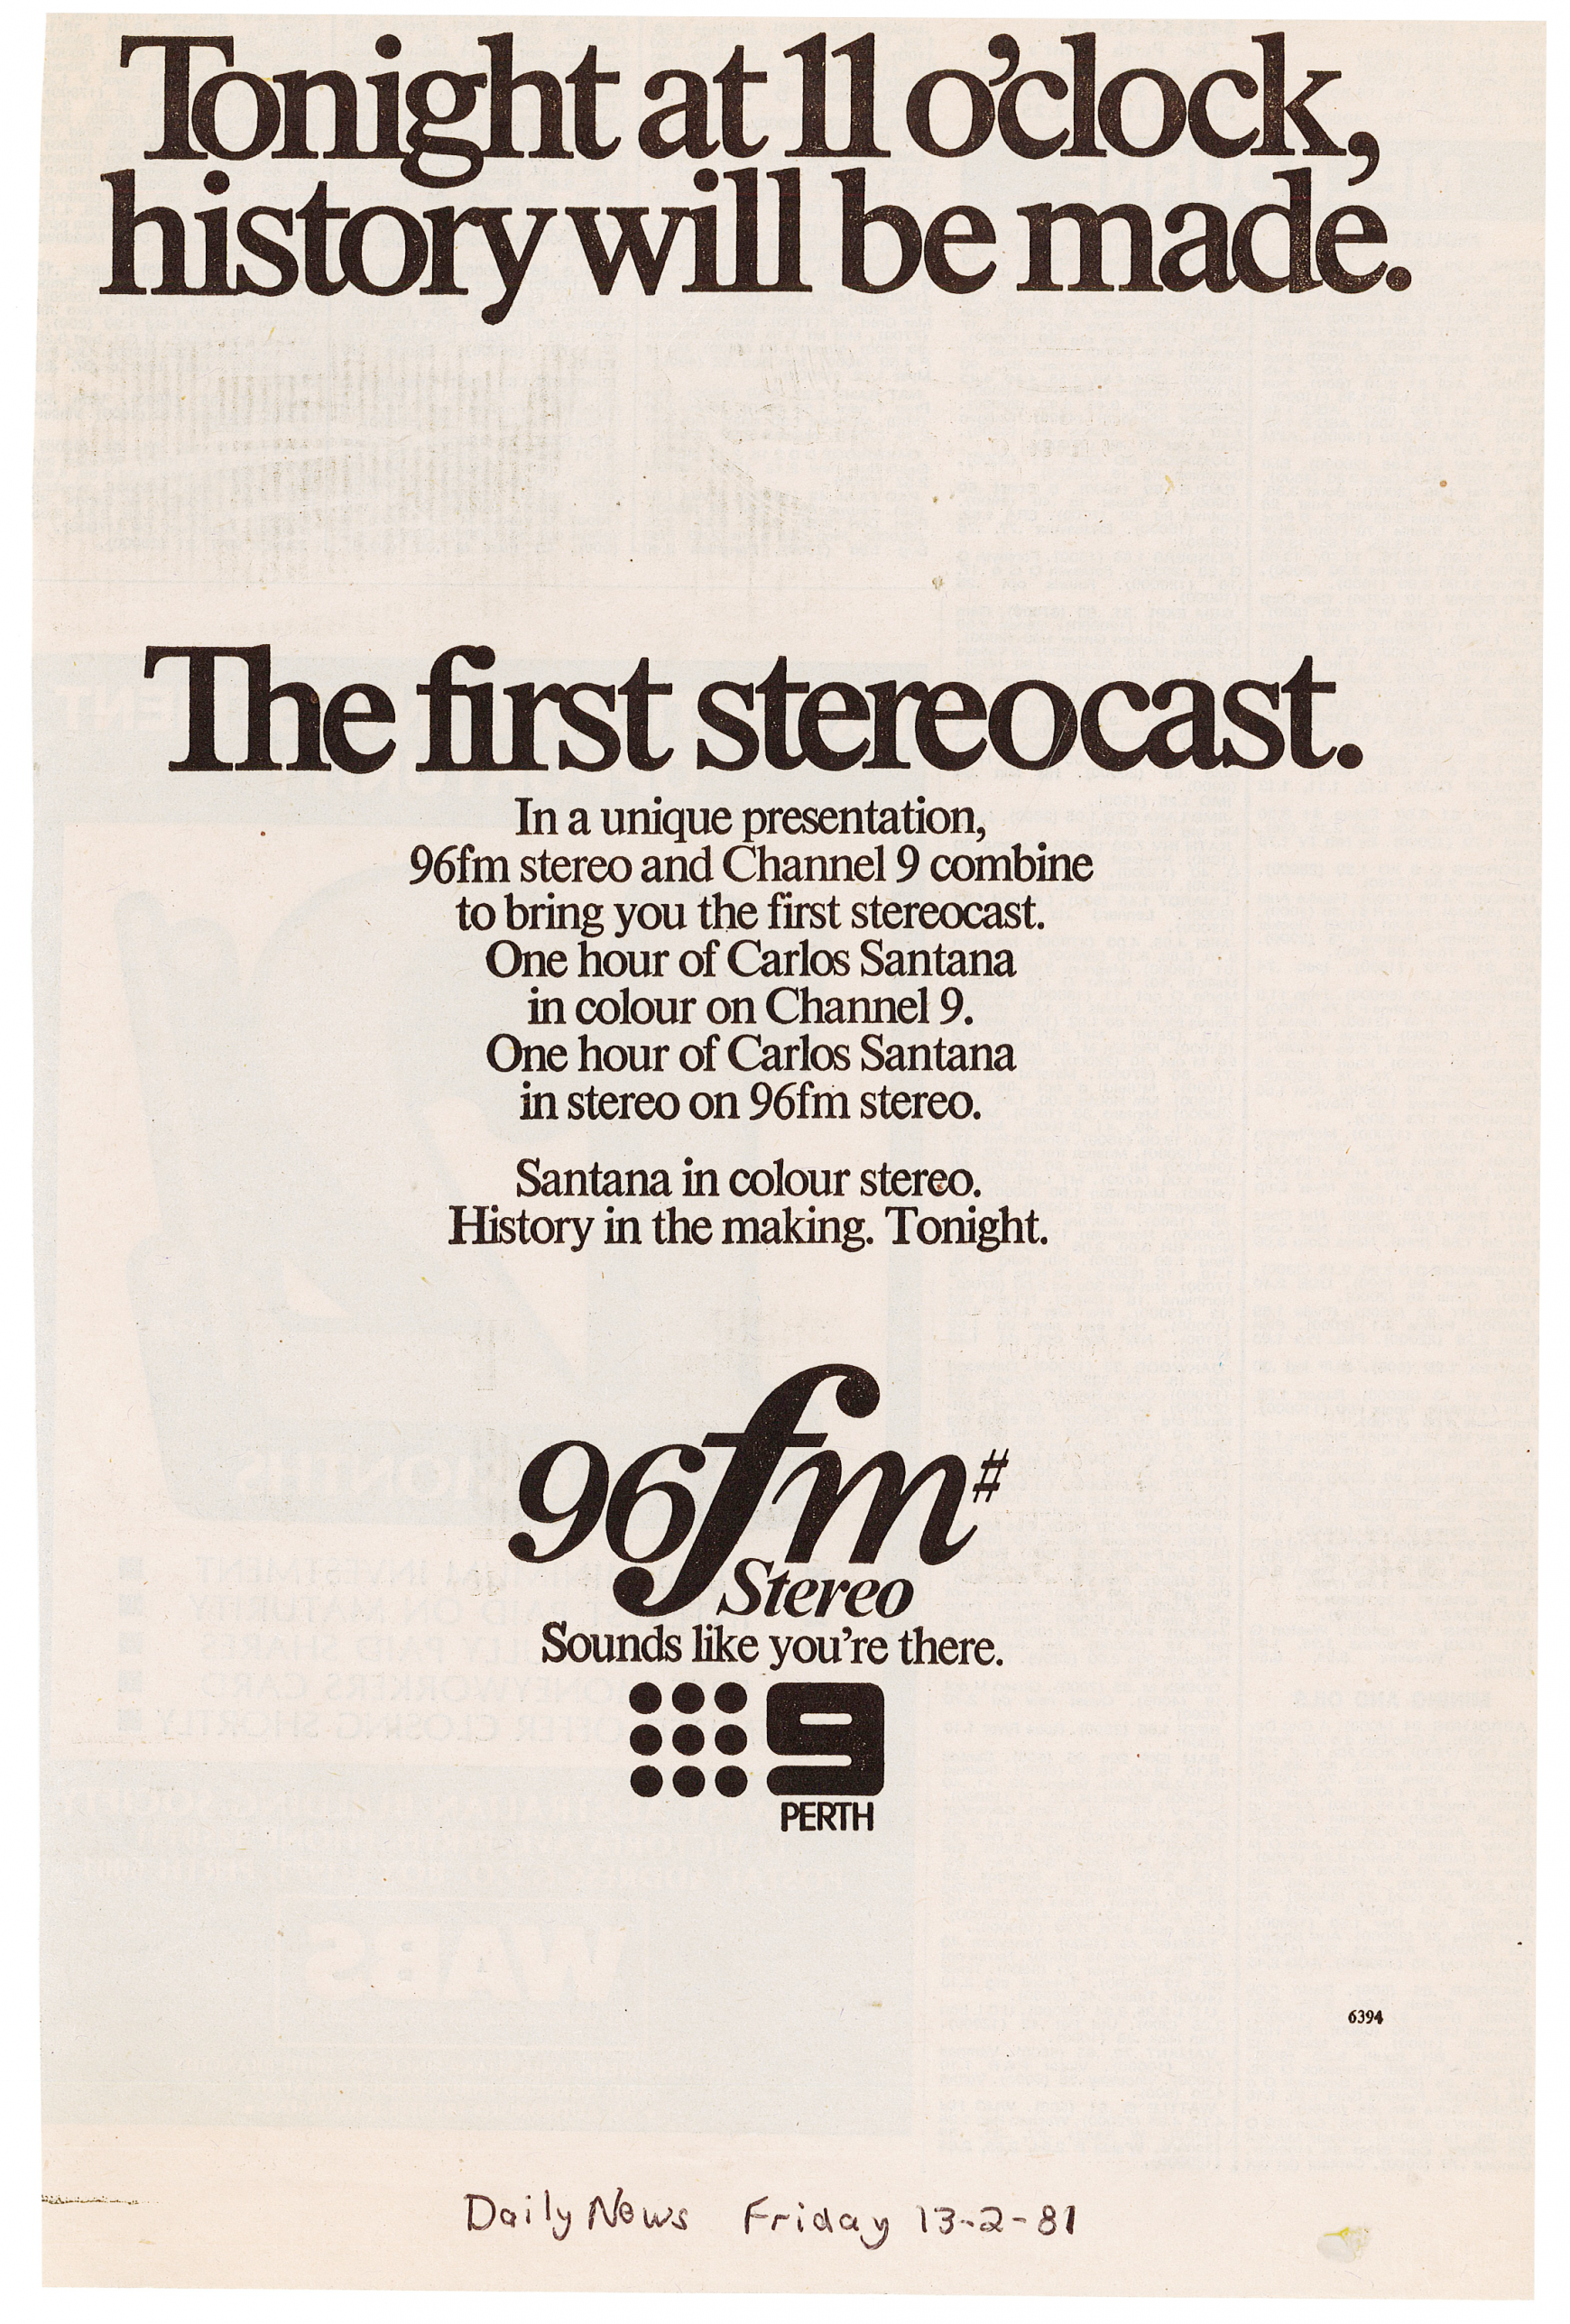 1981.02.13 - Advert - First Stereocast - Daily News.png